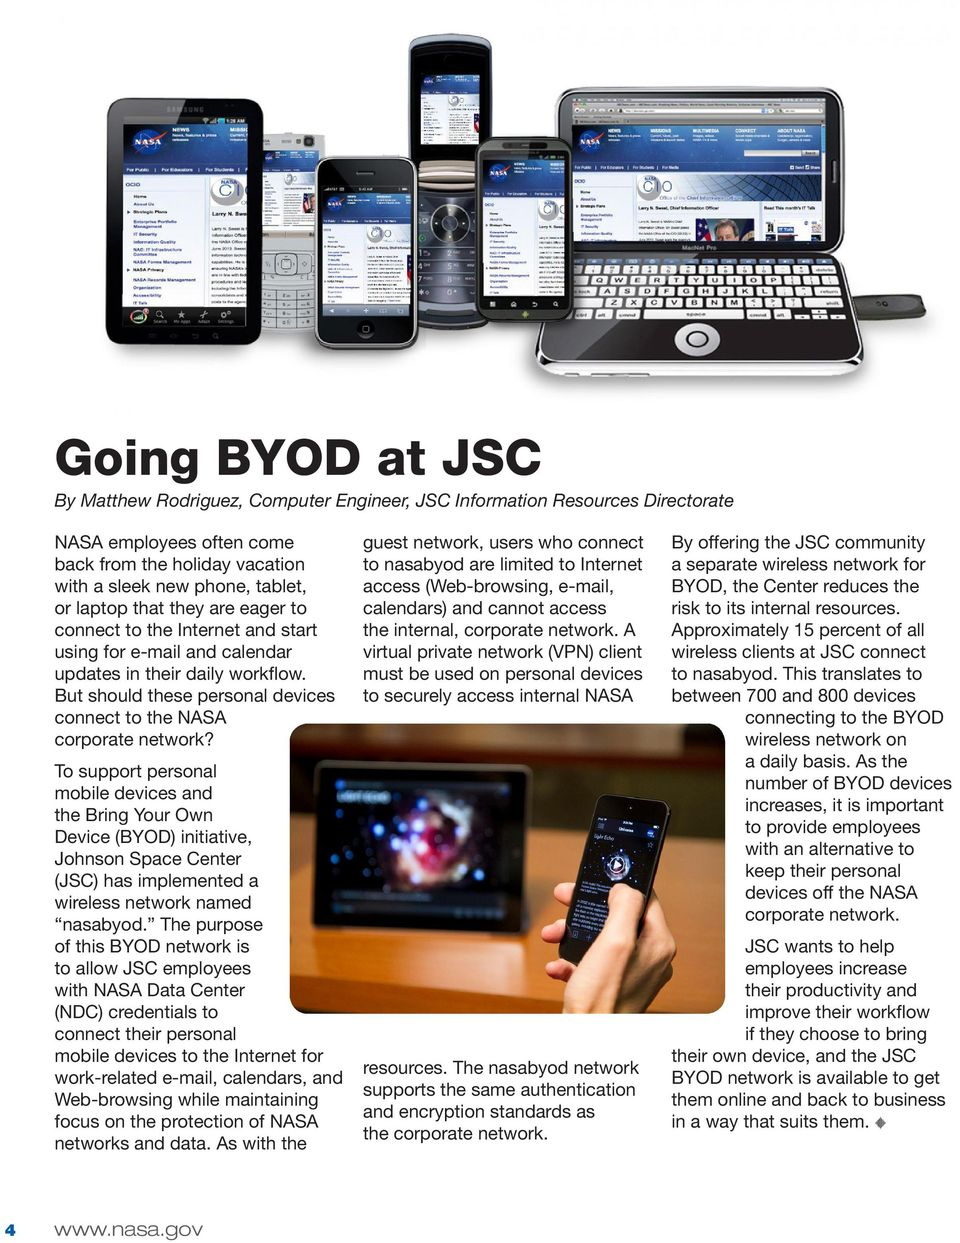 To support personal mobile devices and the Bring Your Own Device (BYOD) initiative, Johnson Space Center (JSC) has implemented a wireless network named nasabyod.